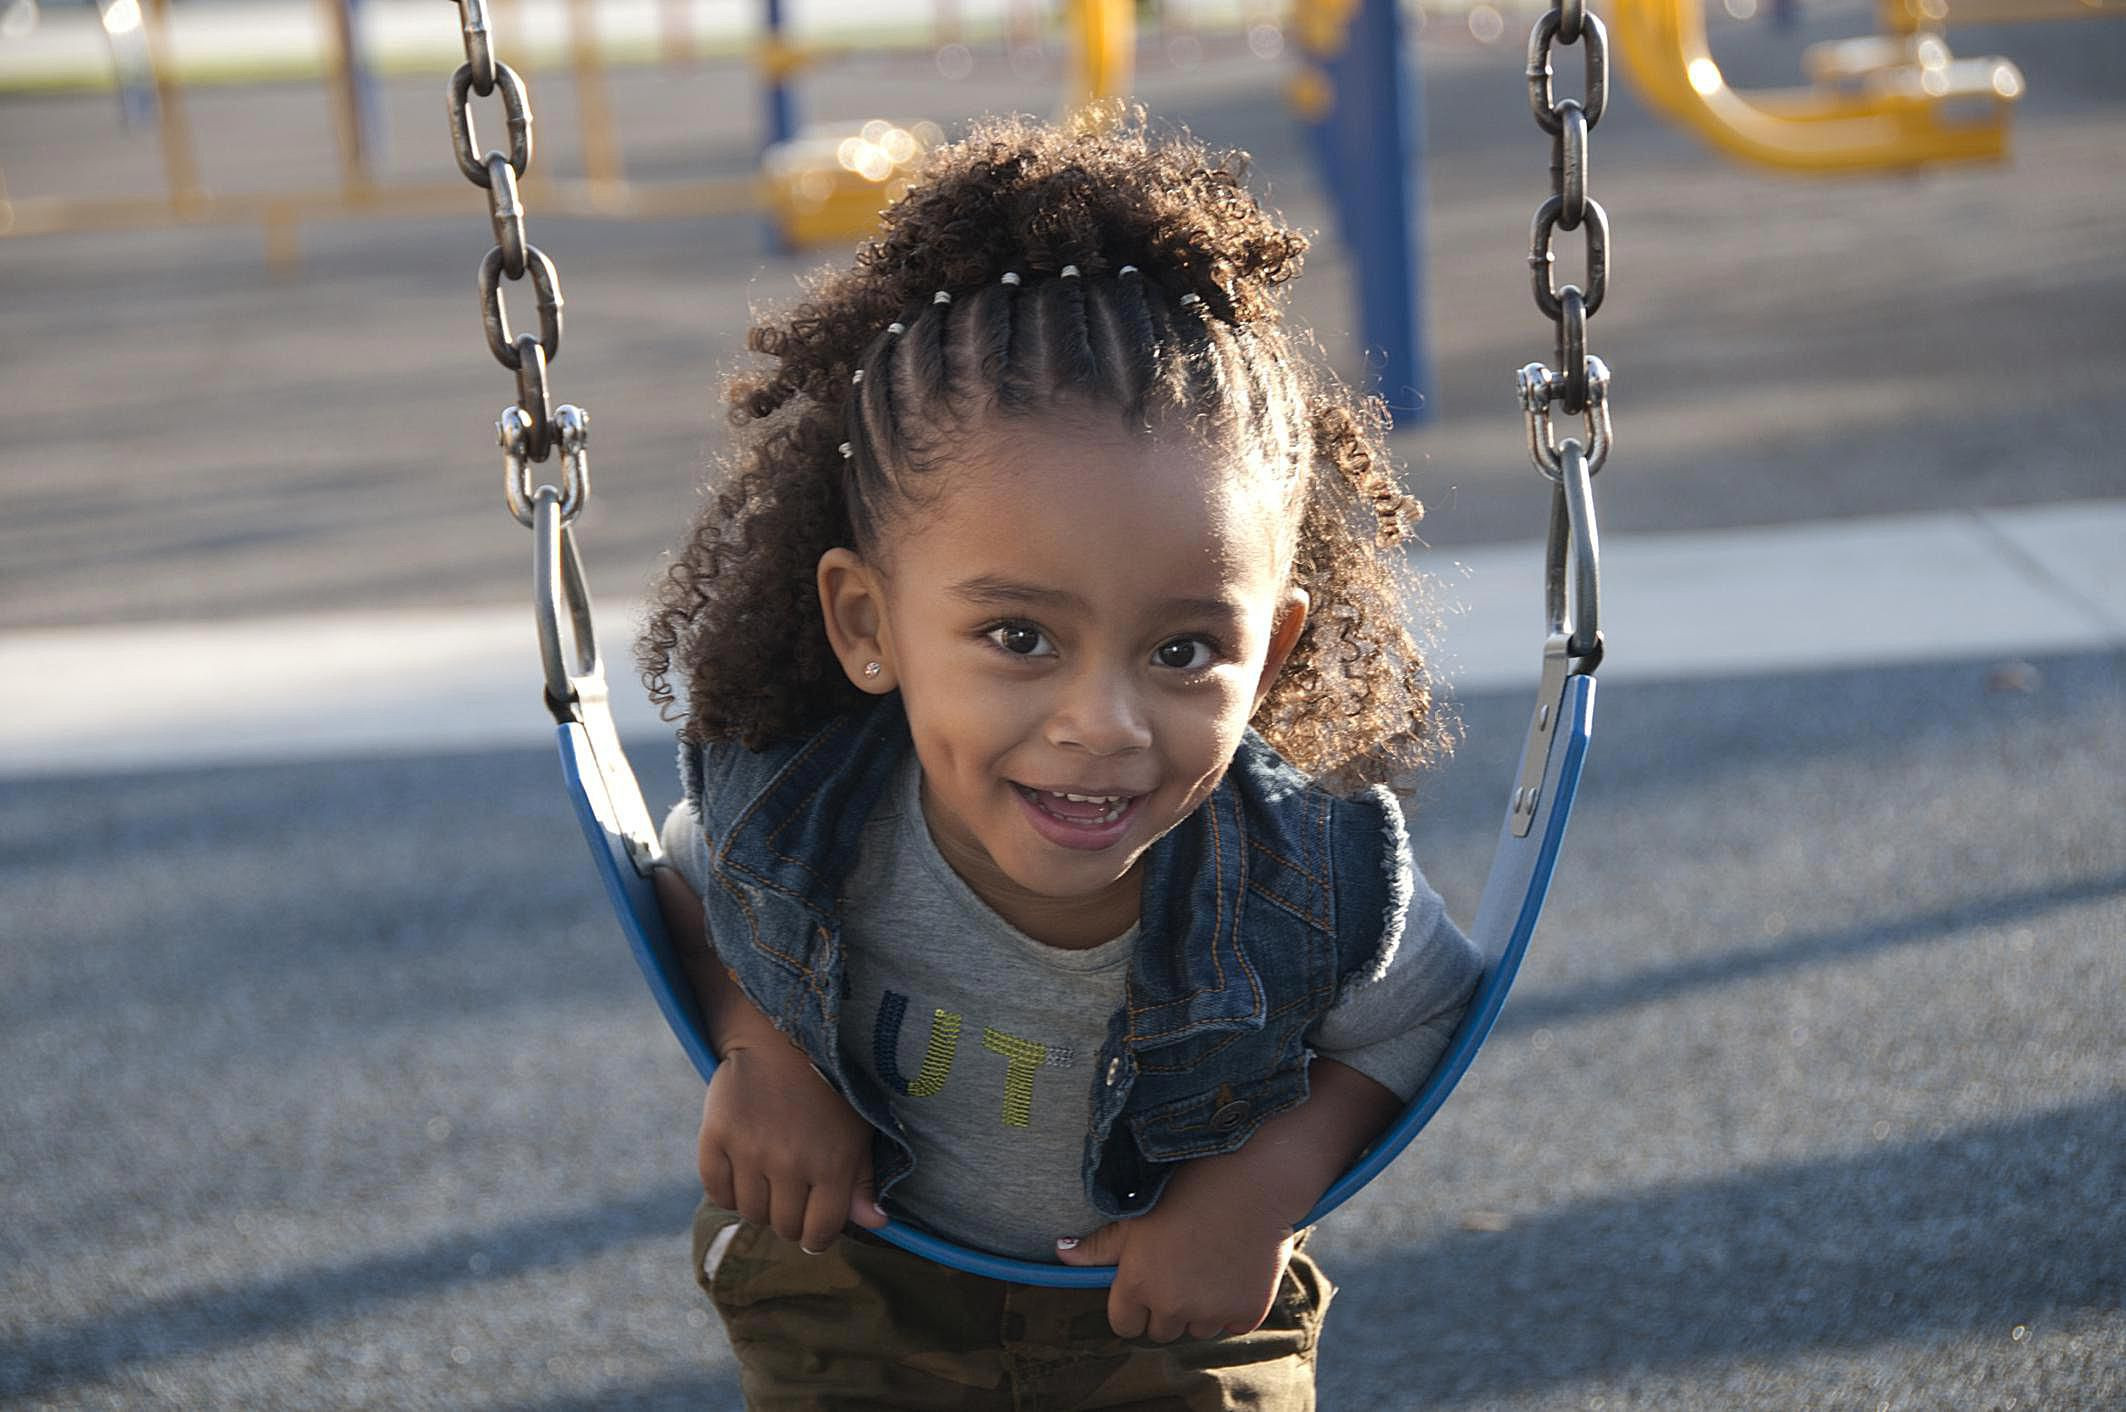 Black Child Hair Care  Black Hairstyles Black Hairstyles for Foster or Adopted